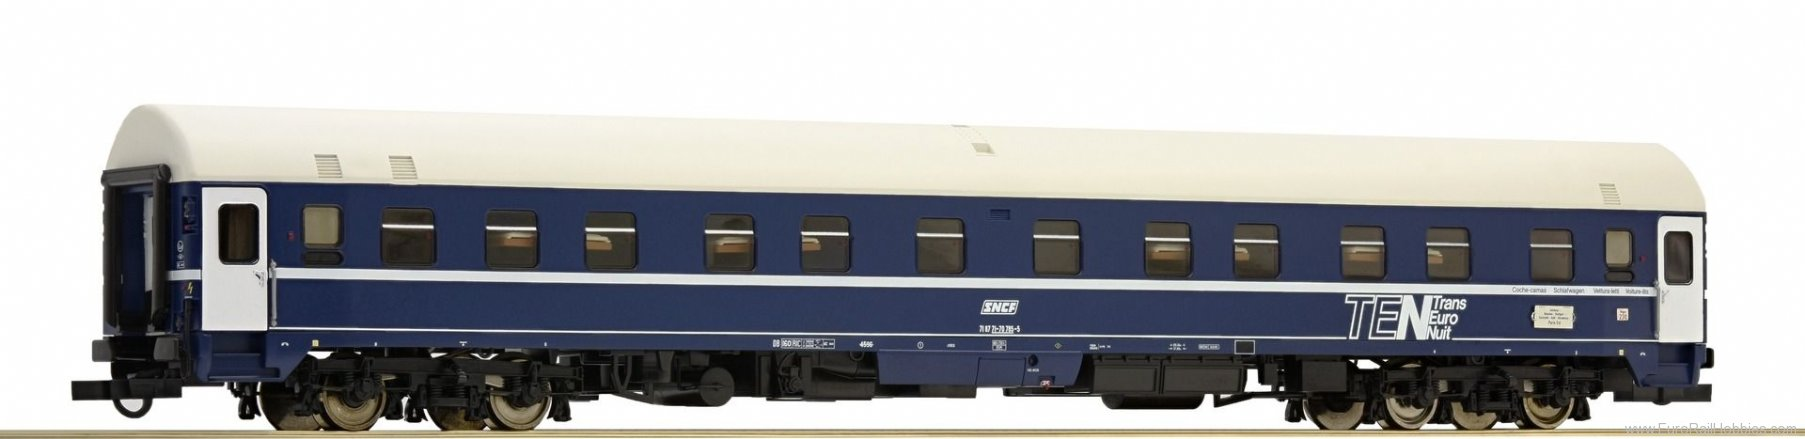 Roco 64519 Sleeper, SNCF